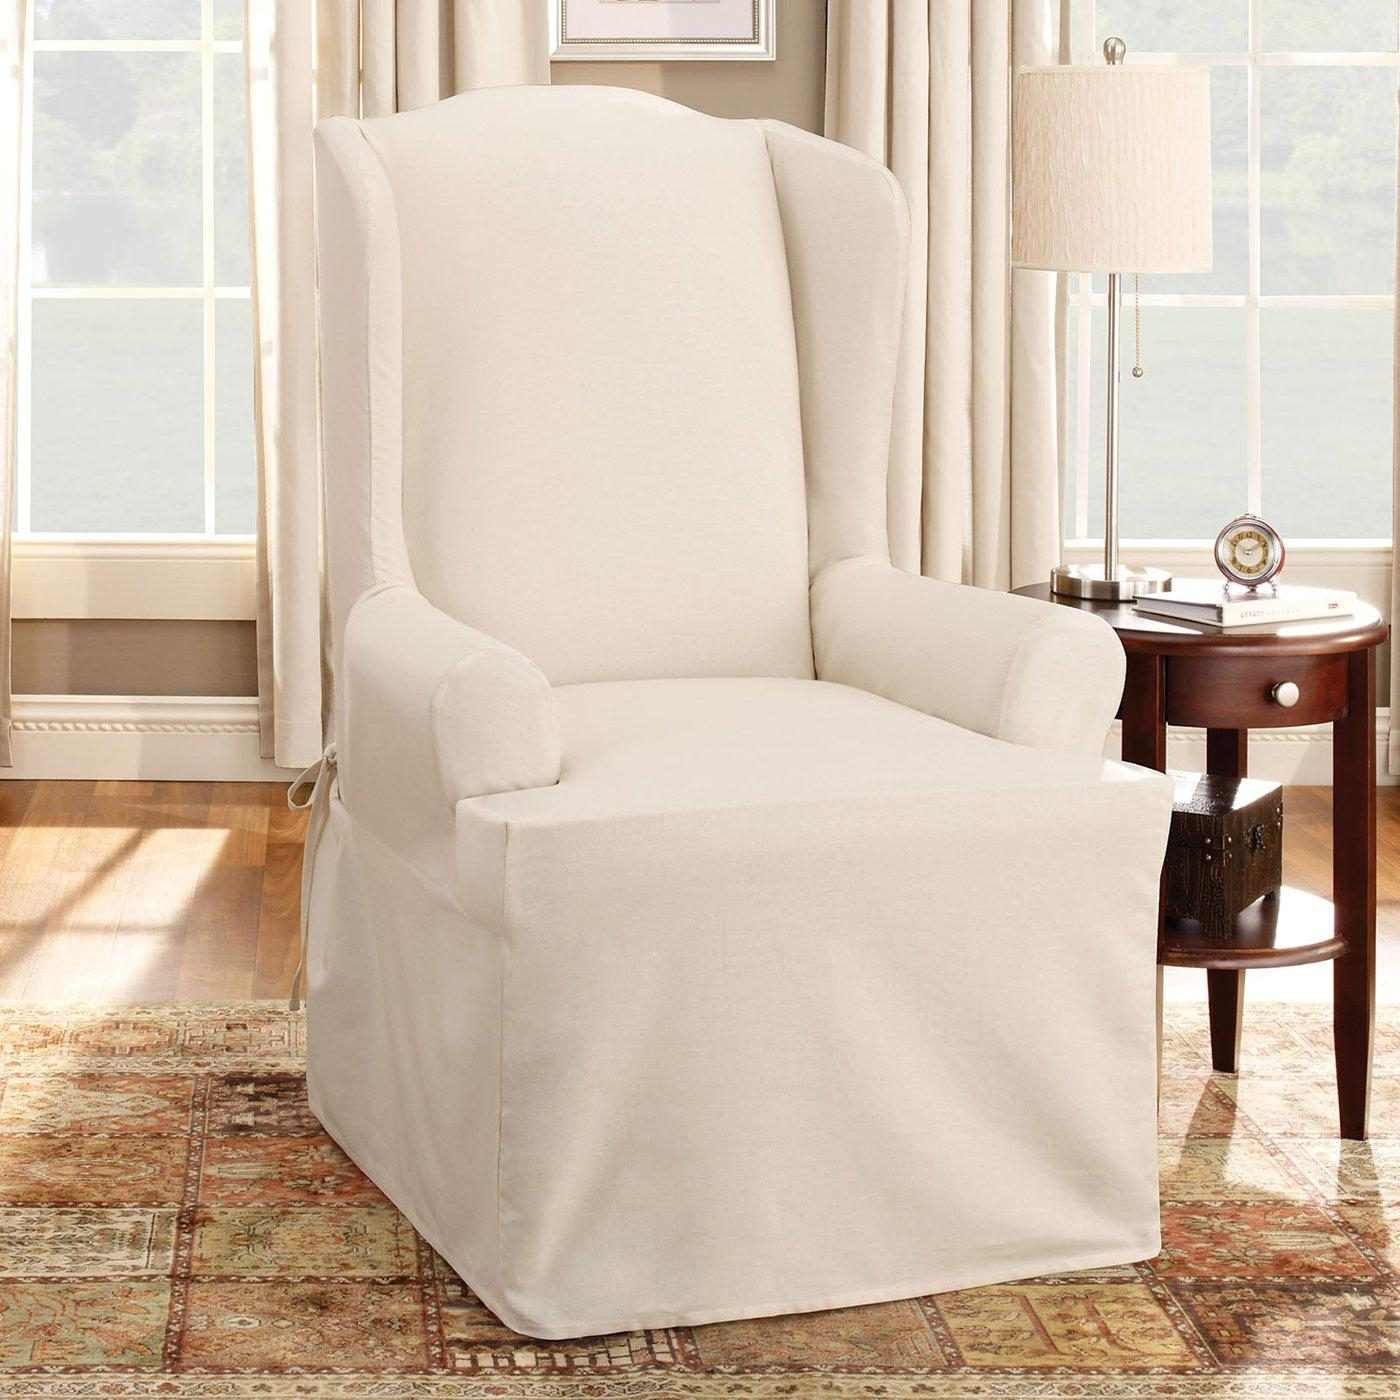 ▻ Sofa : 23 Luxury Wingback Charir Slipcover Design With Matching intended for Sofa and Chair Slipcovers